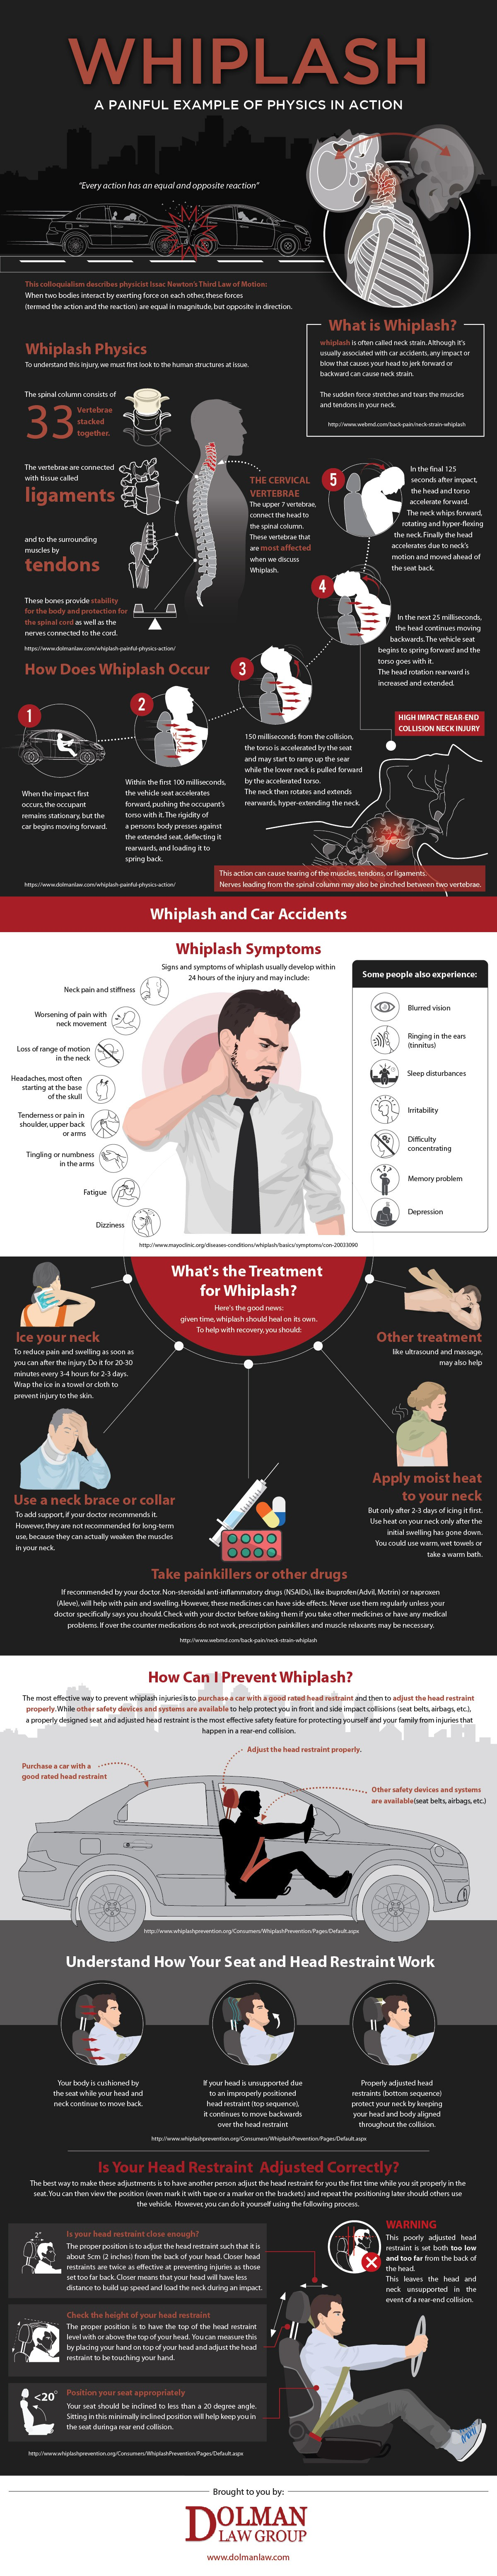 Create an Infographic on Whiplash